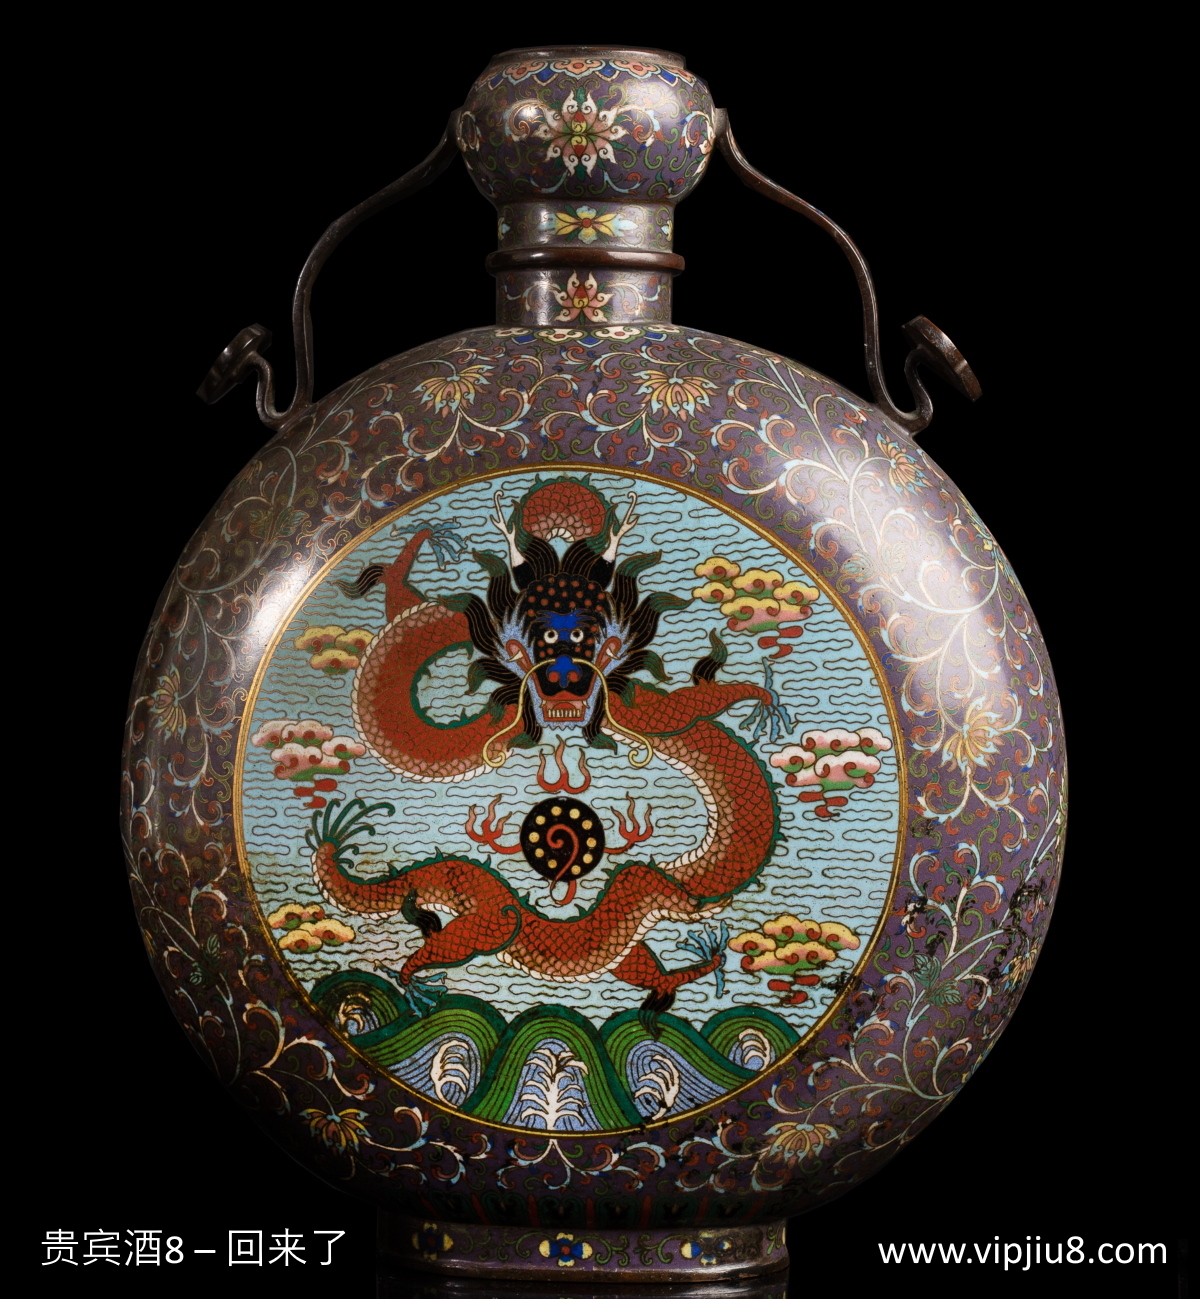 A Dragon Cloisonne Moon Flask (Bianhu)